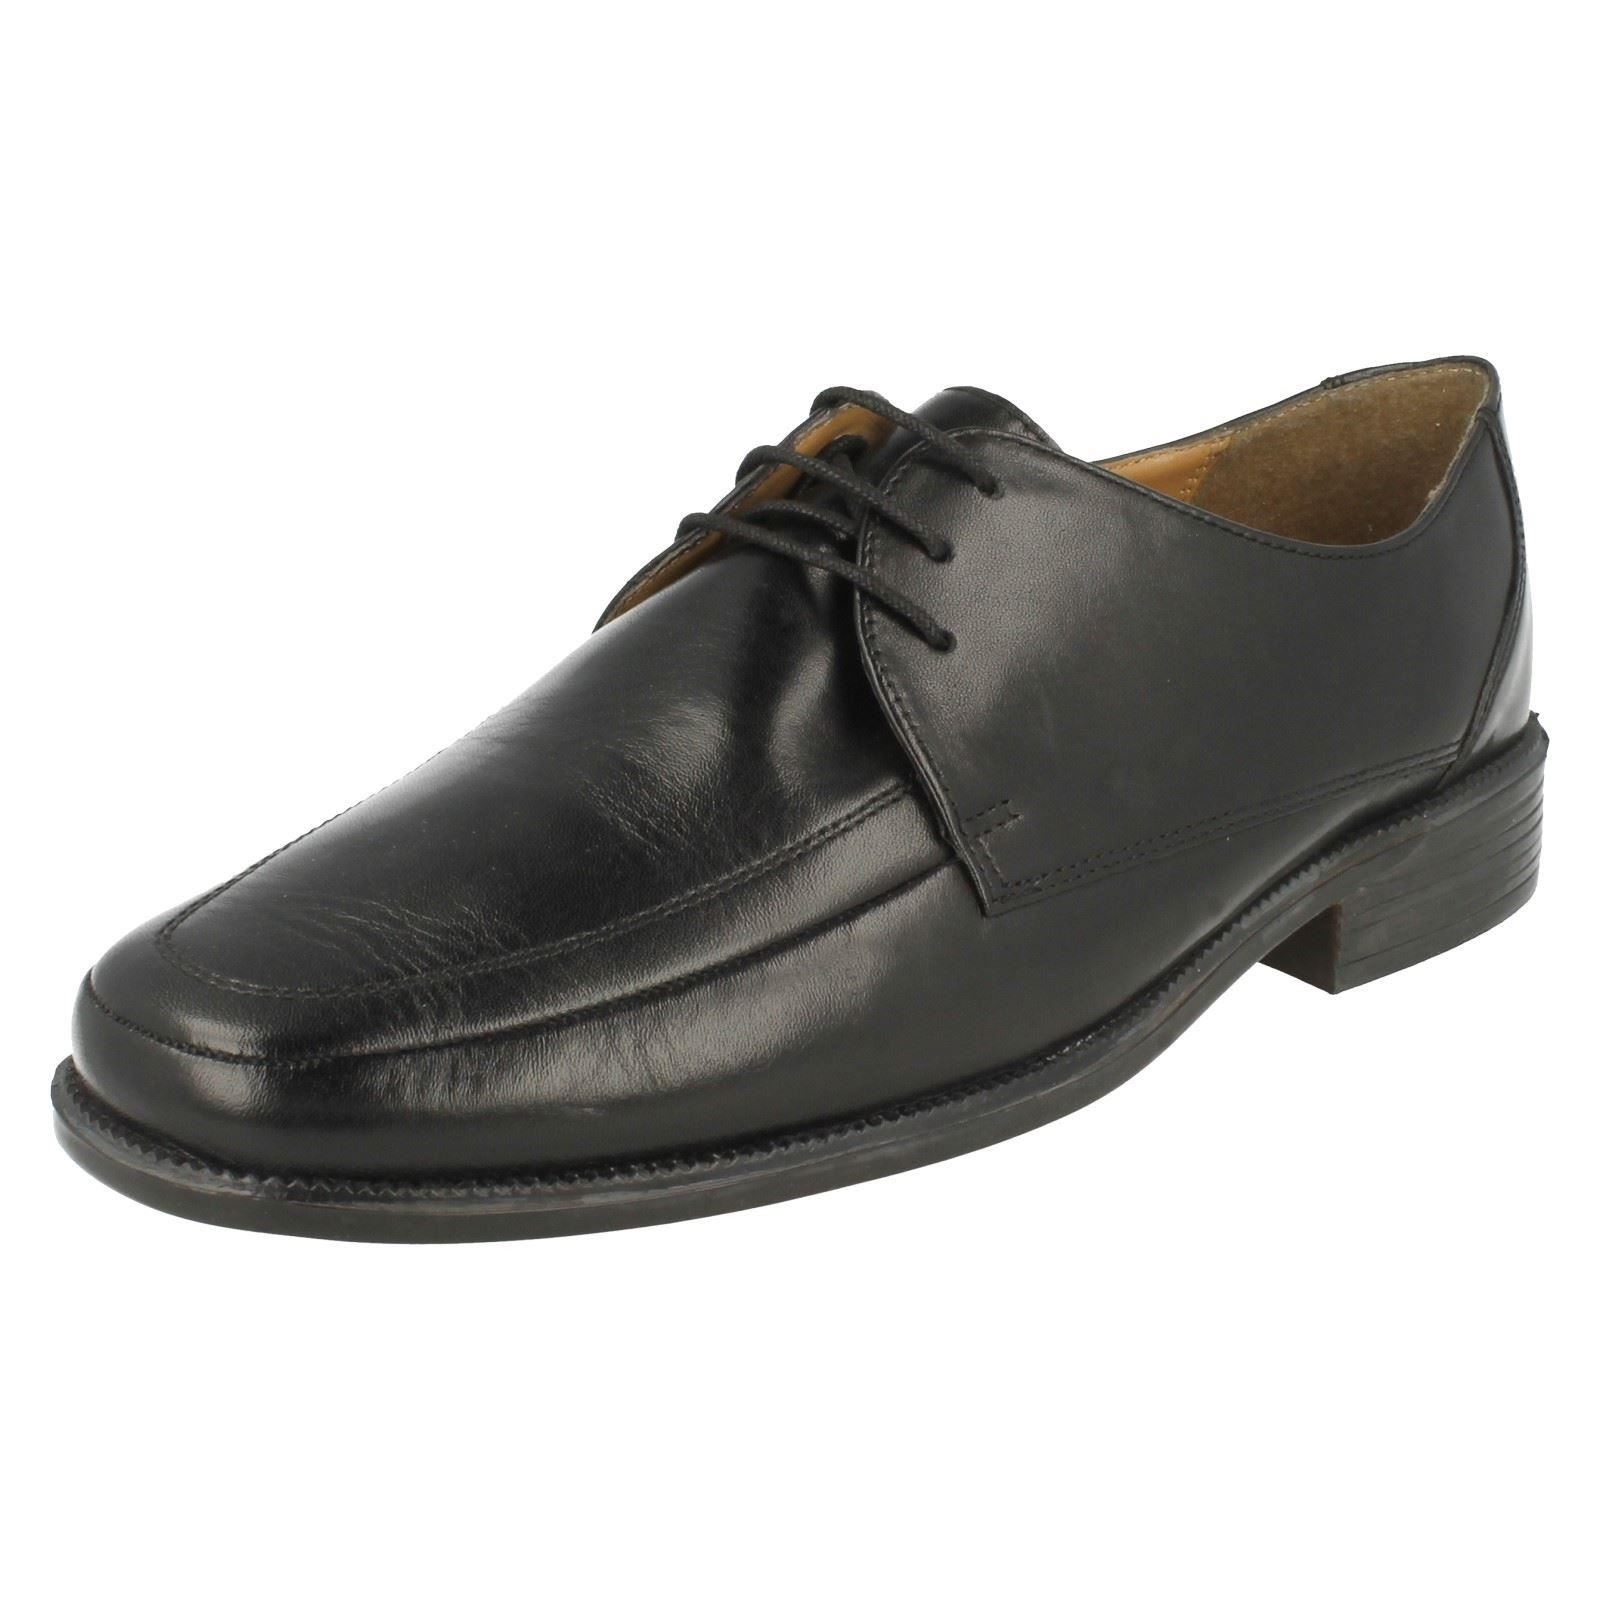 Mens Clarks Extra Wide Formal Lace Up Shoes - 'Astute Style'